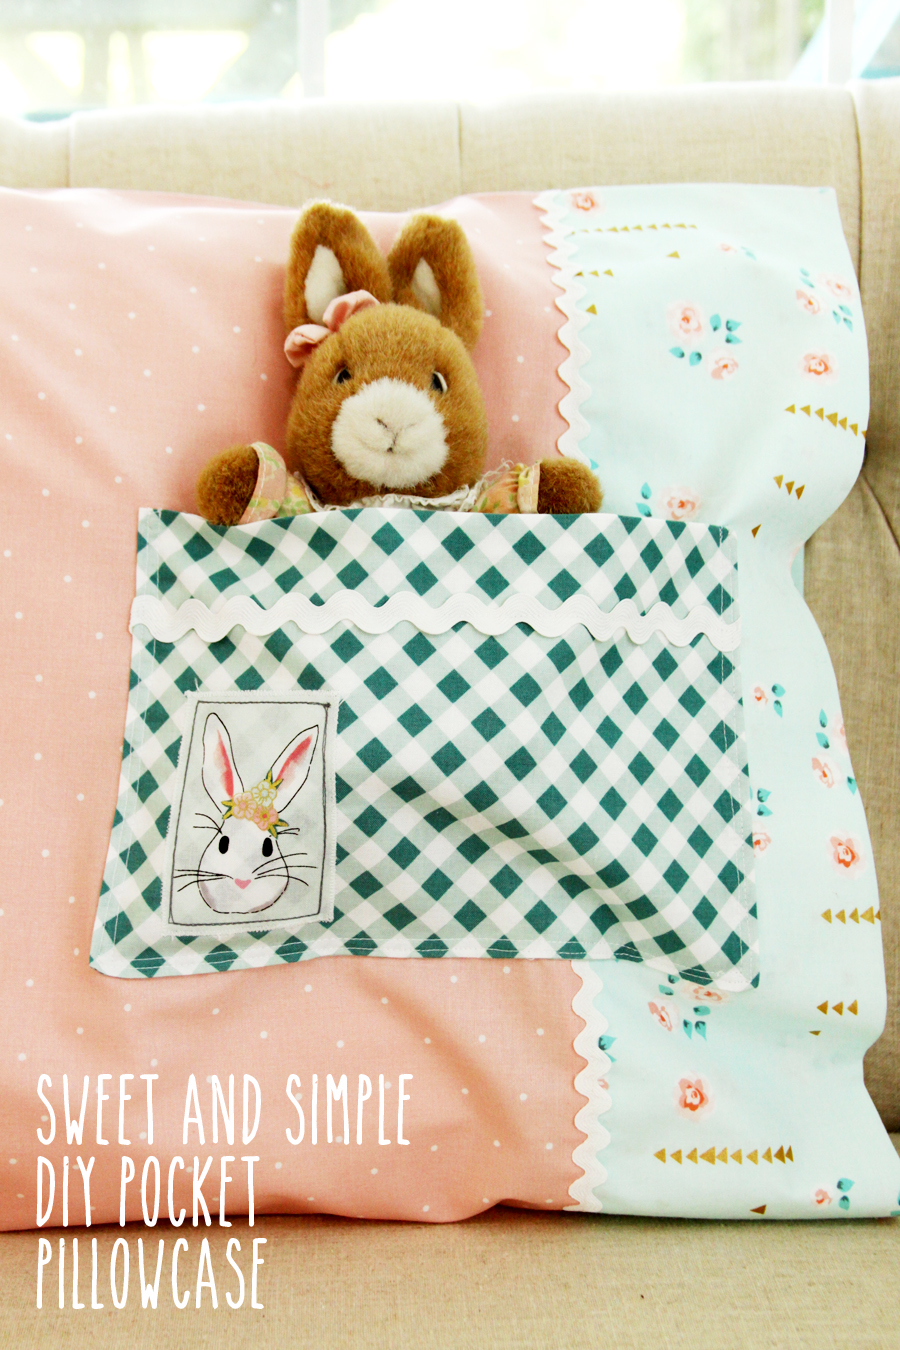 Sweet and Simple DIY Pocket Pillowcase